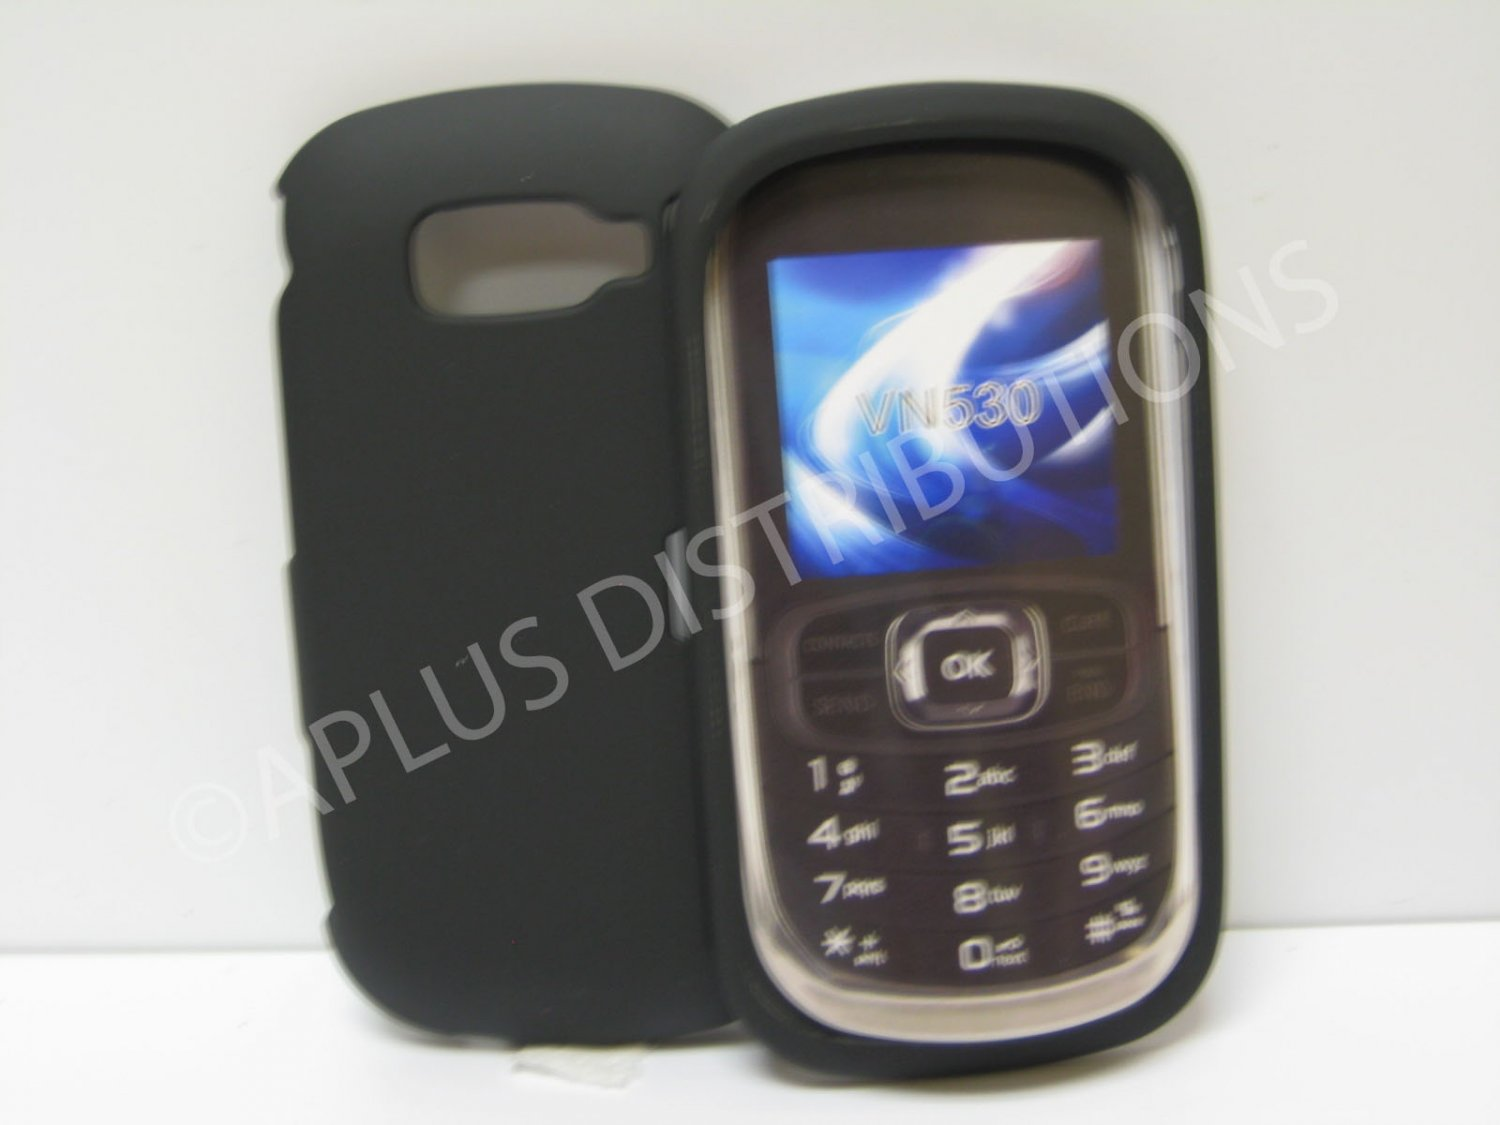 New Black Rubberized Hard Protective Cover For LG Octane Vn530 - (0051)